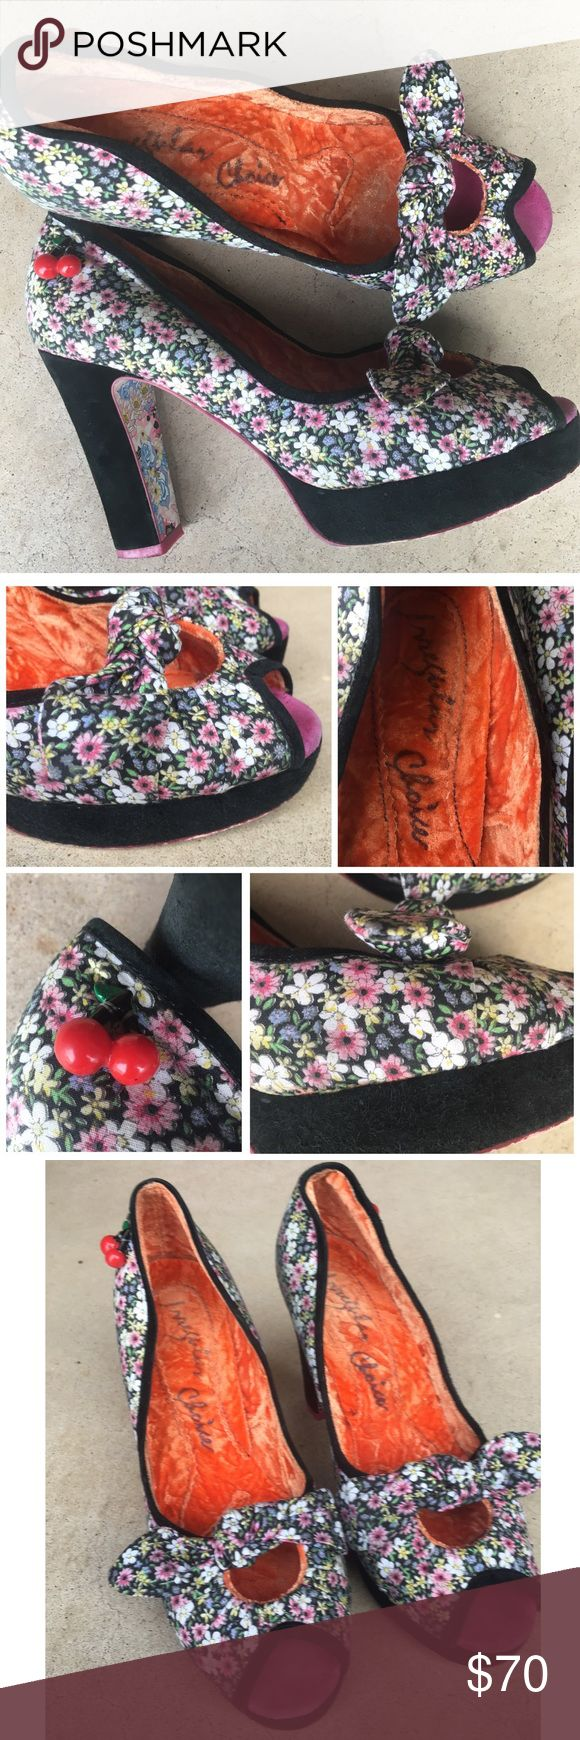 IREEGULAR CHOICE FLORAL CHERRY CHARM SHOES HEELS IREEGULAR CHOICE FLORAL CHERRY CHARM SHOES HEELS SZ 10 Irregular Choice Shoes Heels